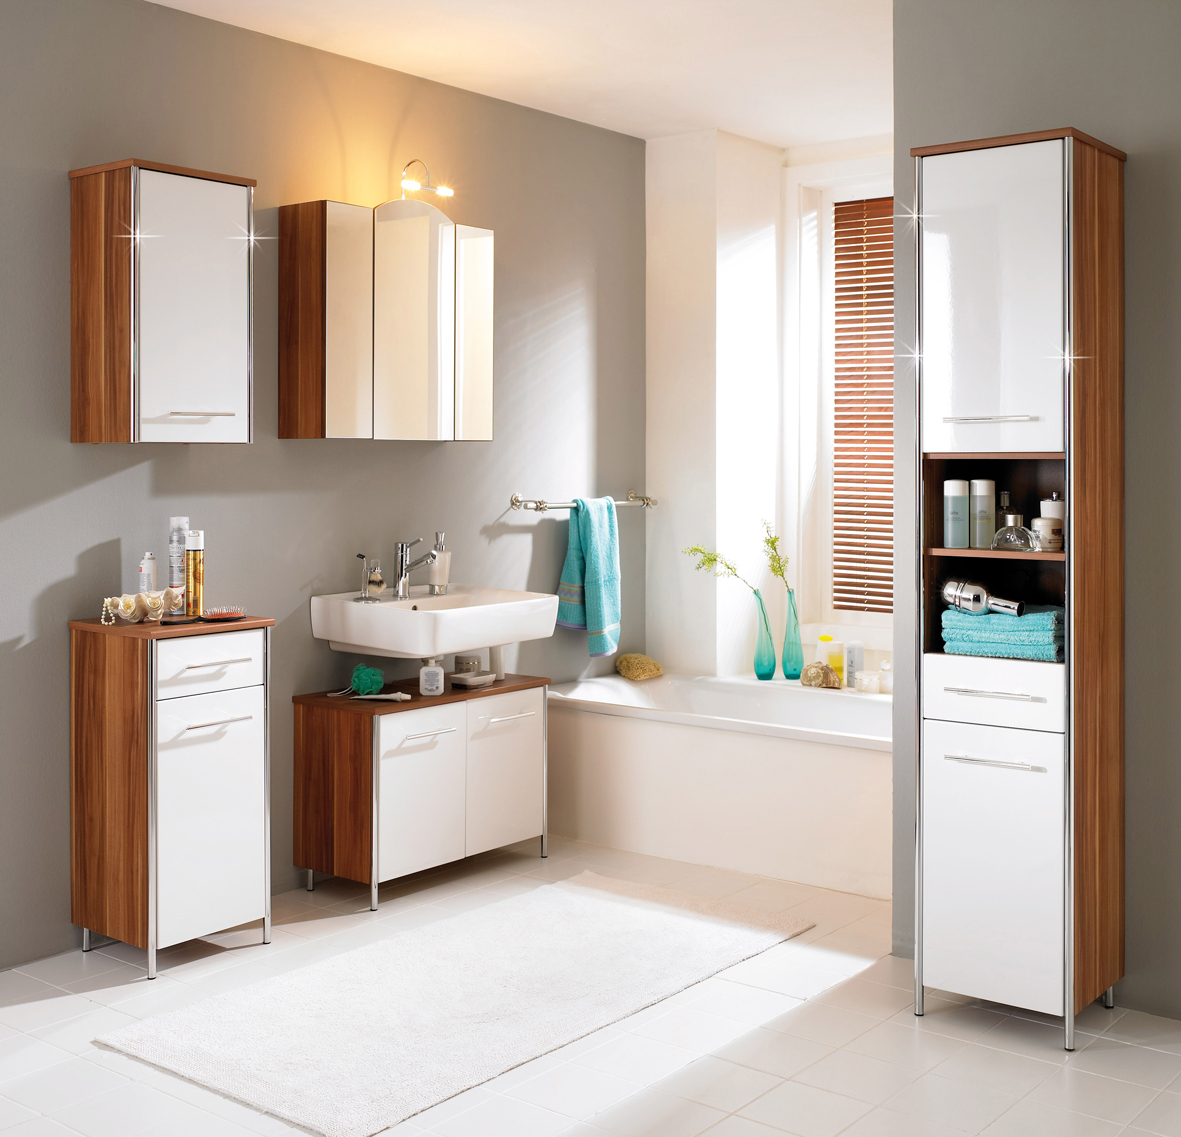 Modern bathroom decorations - Modern Bathroom